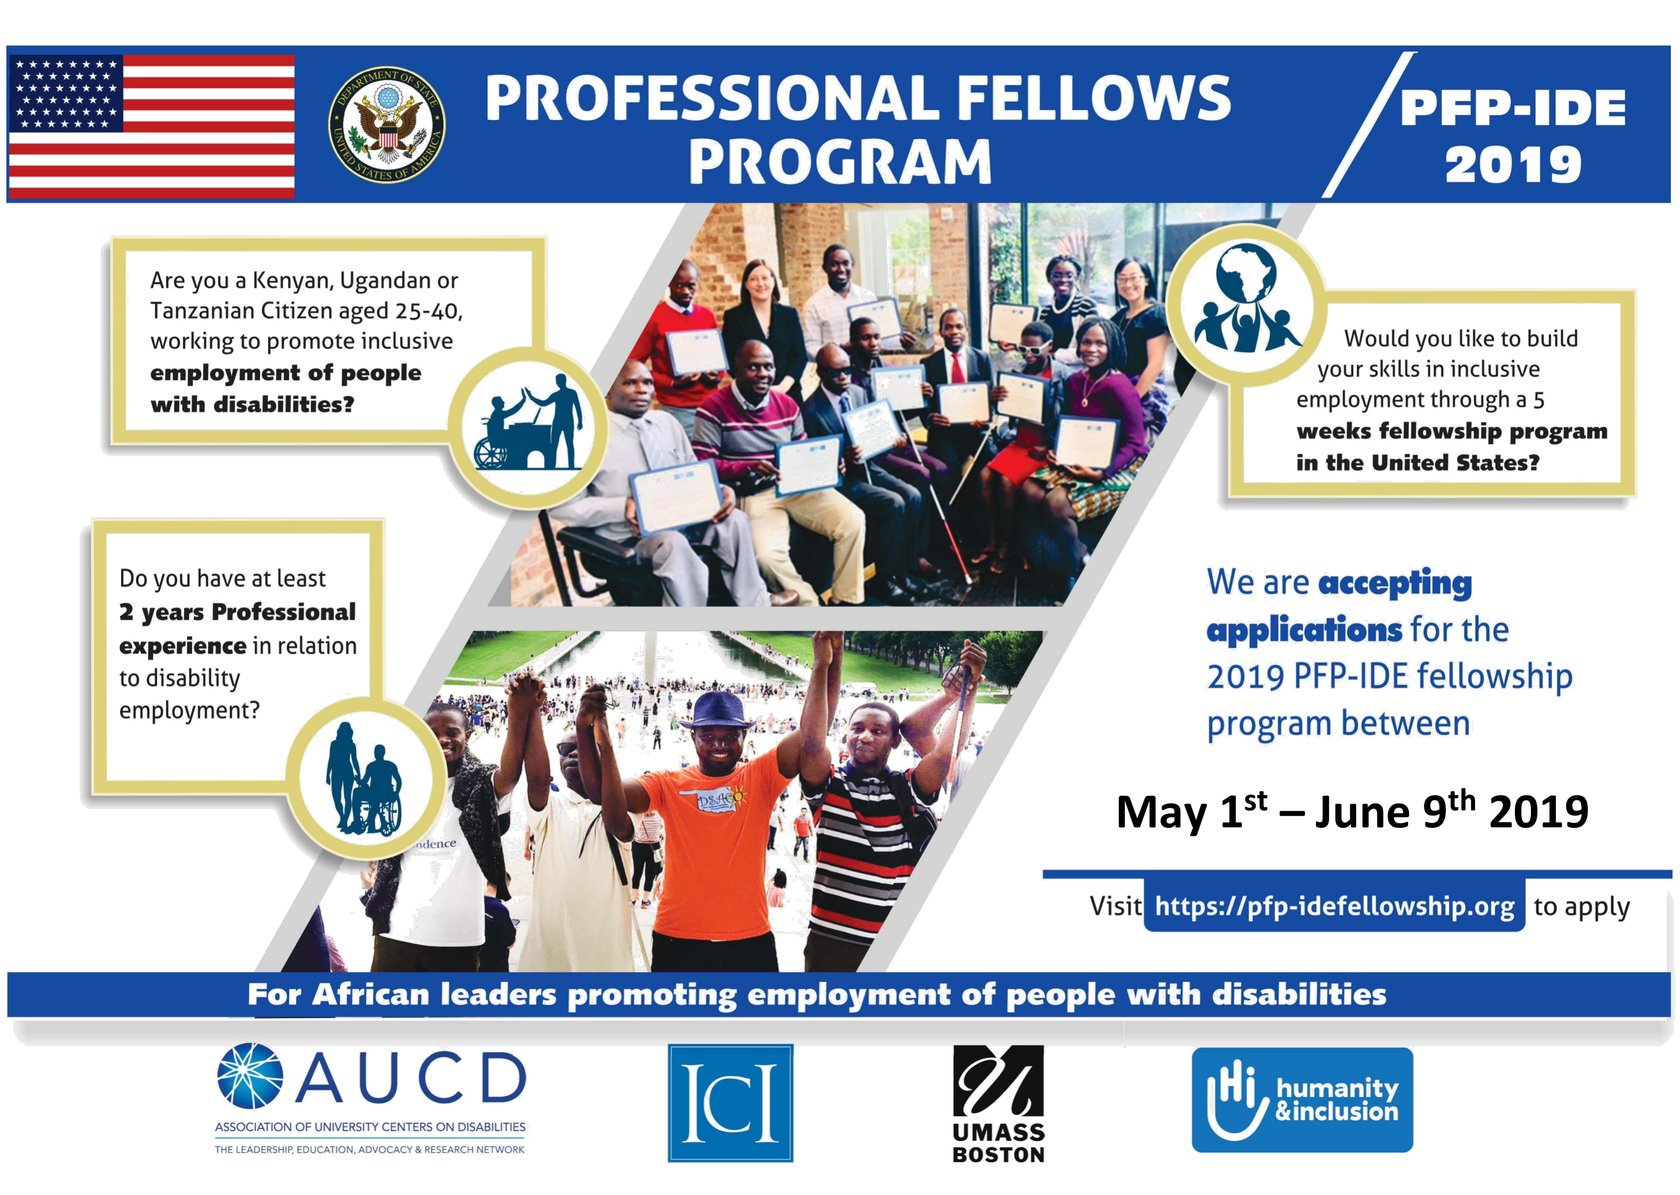 U.S. Department of State 2019 Expert Fellows Program on Inclusive Special needs Work (fall friend) for mid-career experts (Totally Moneyed to U.S.A.)